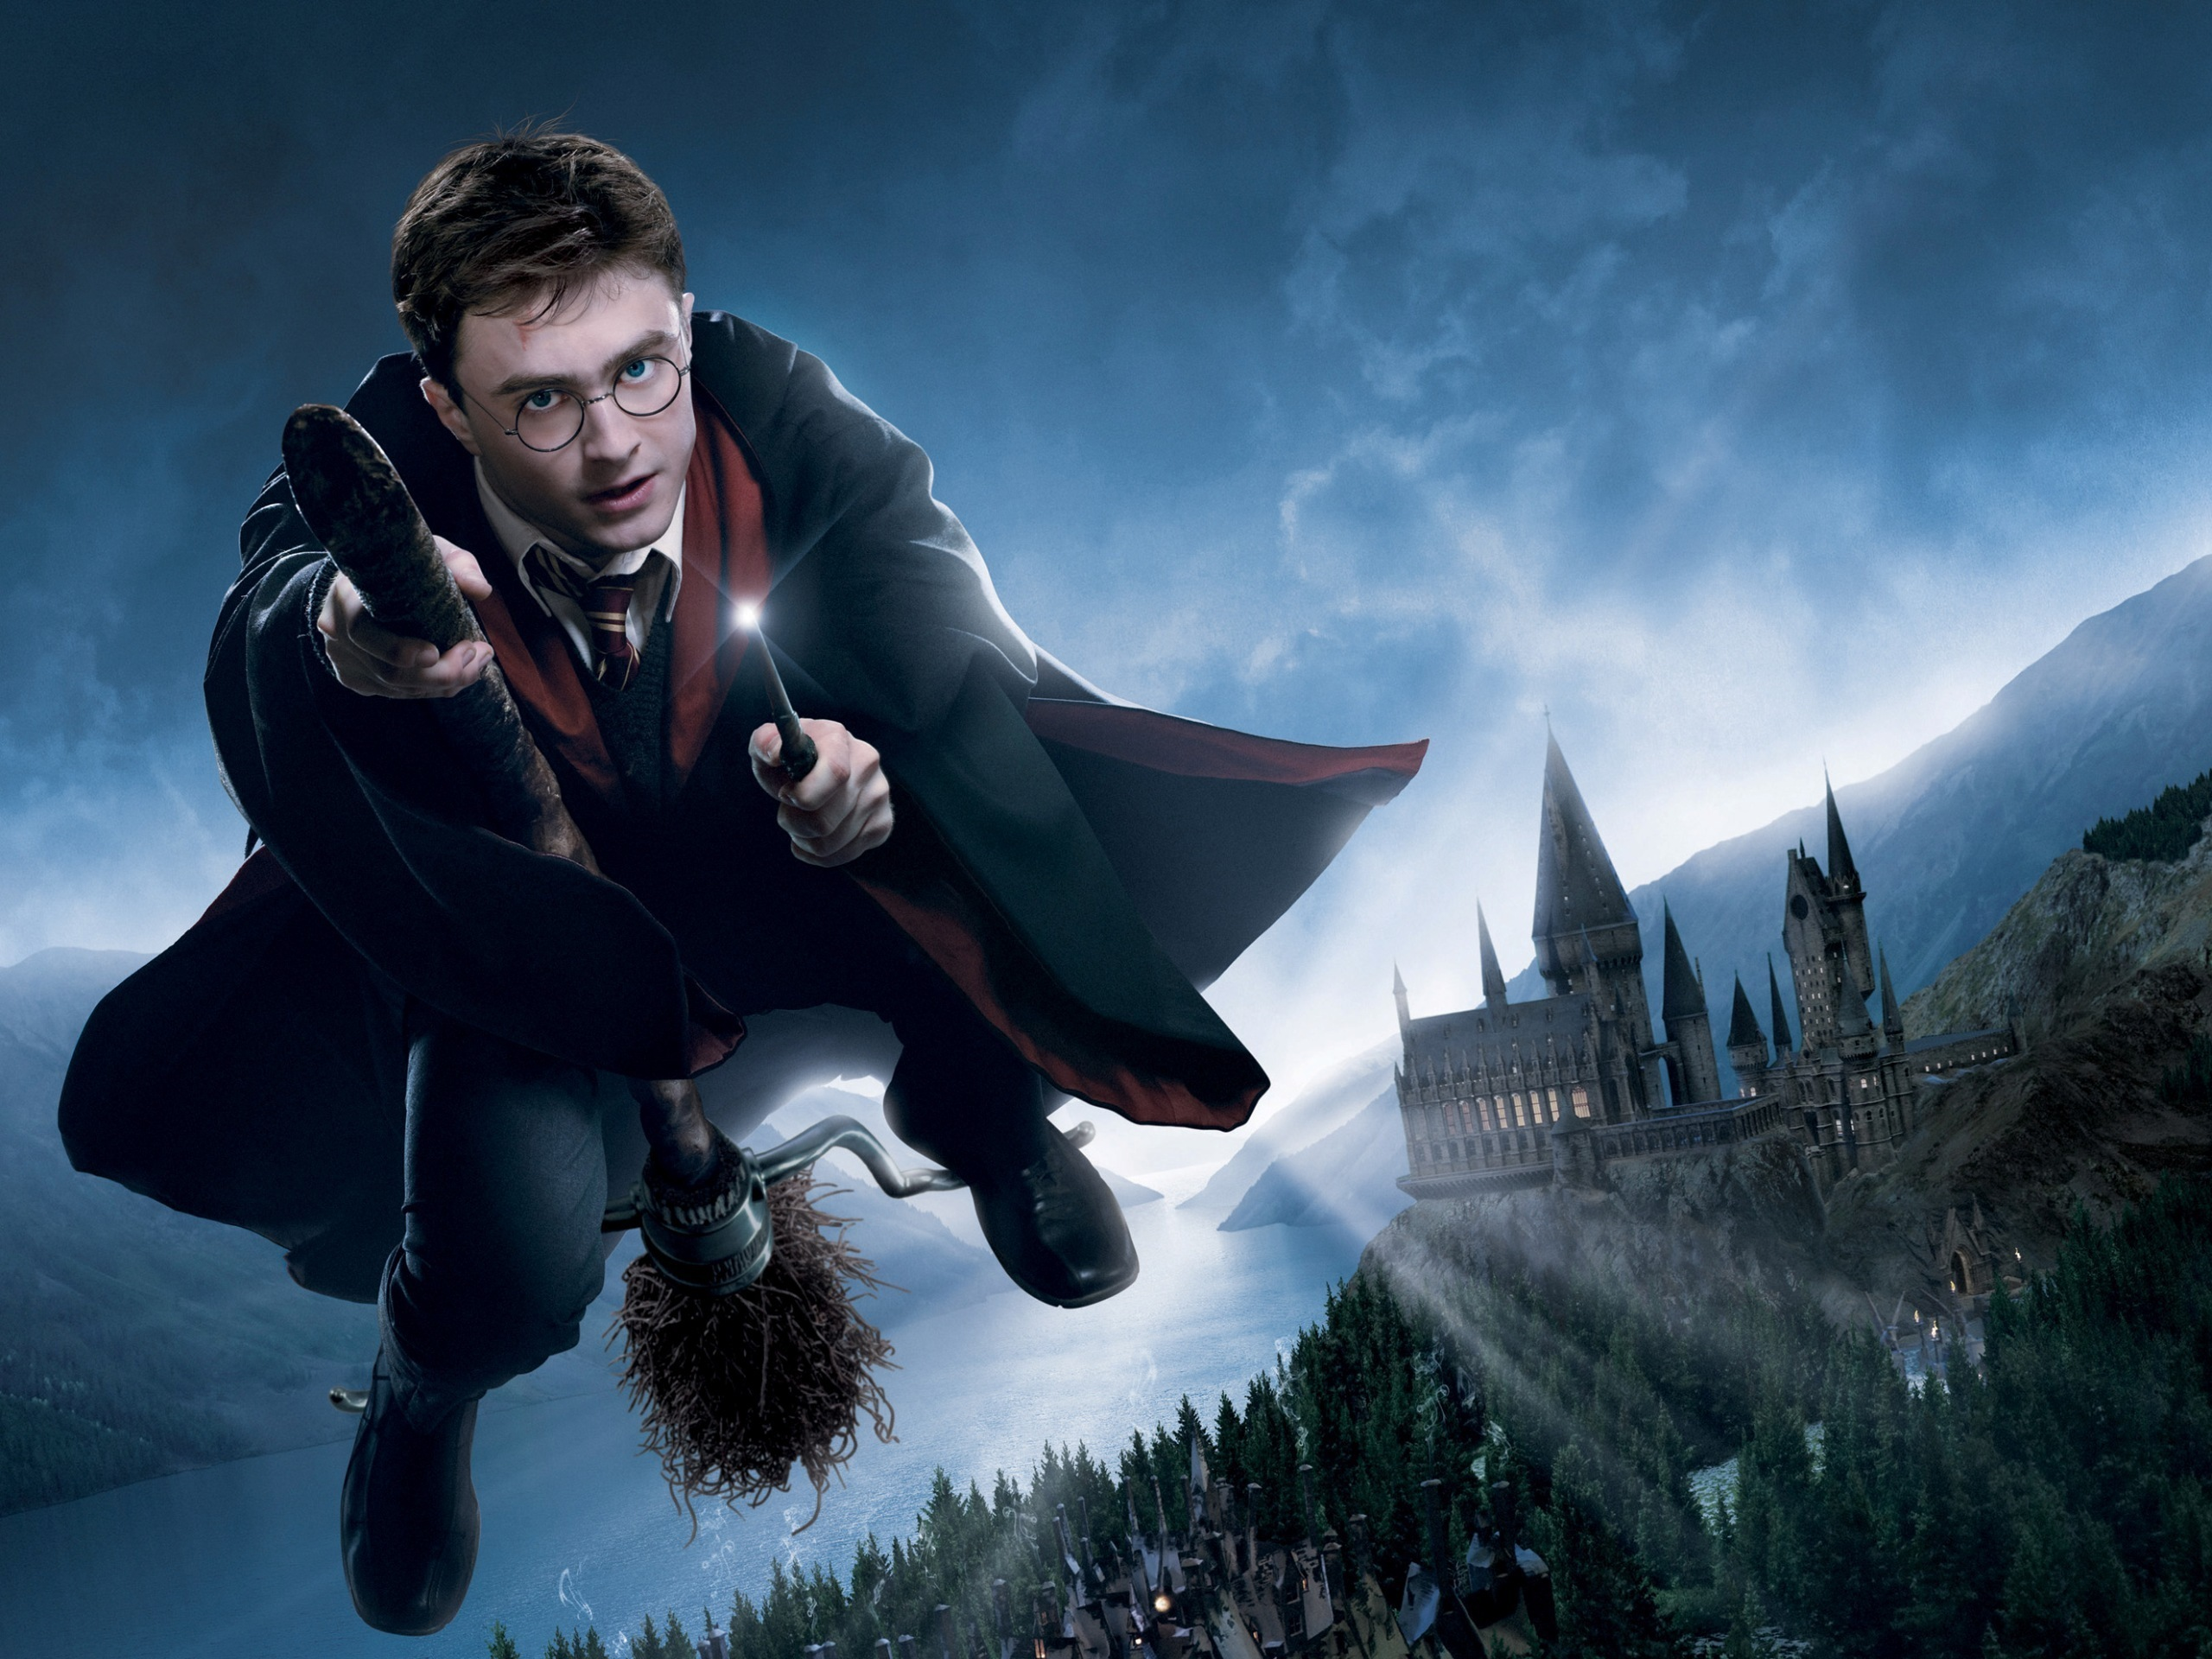 Harry Potter Amazing Hd Wallpapers High Resolution All Hd